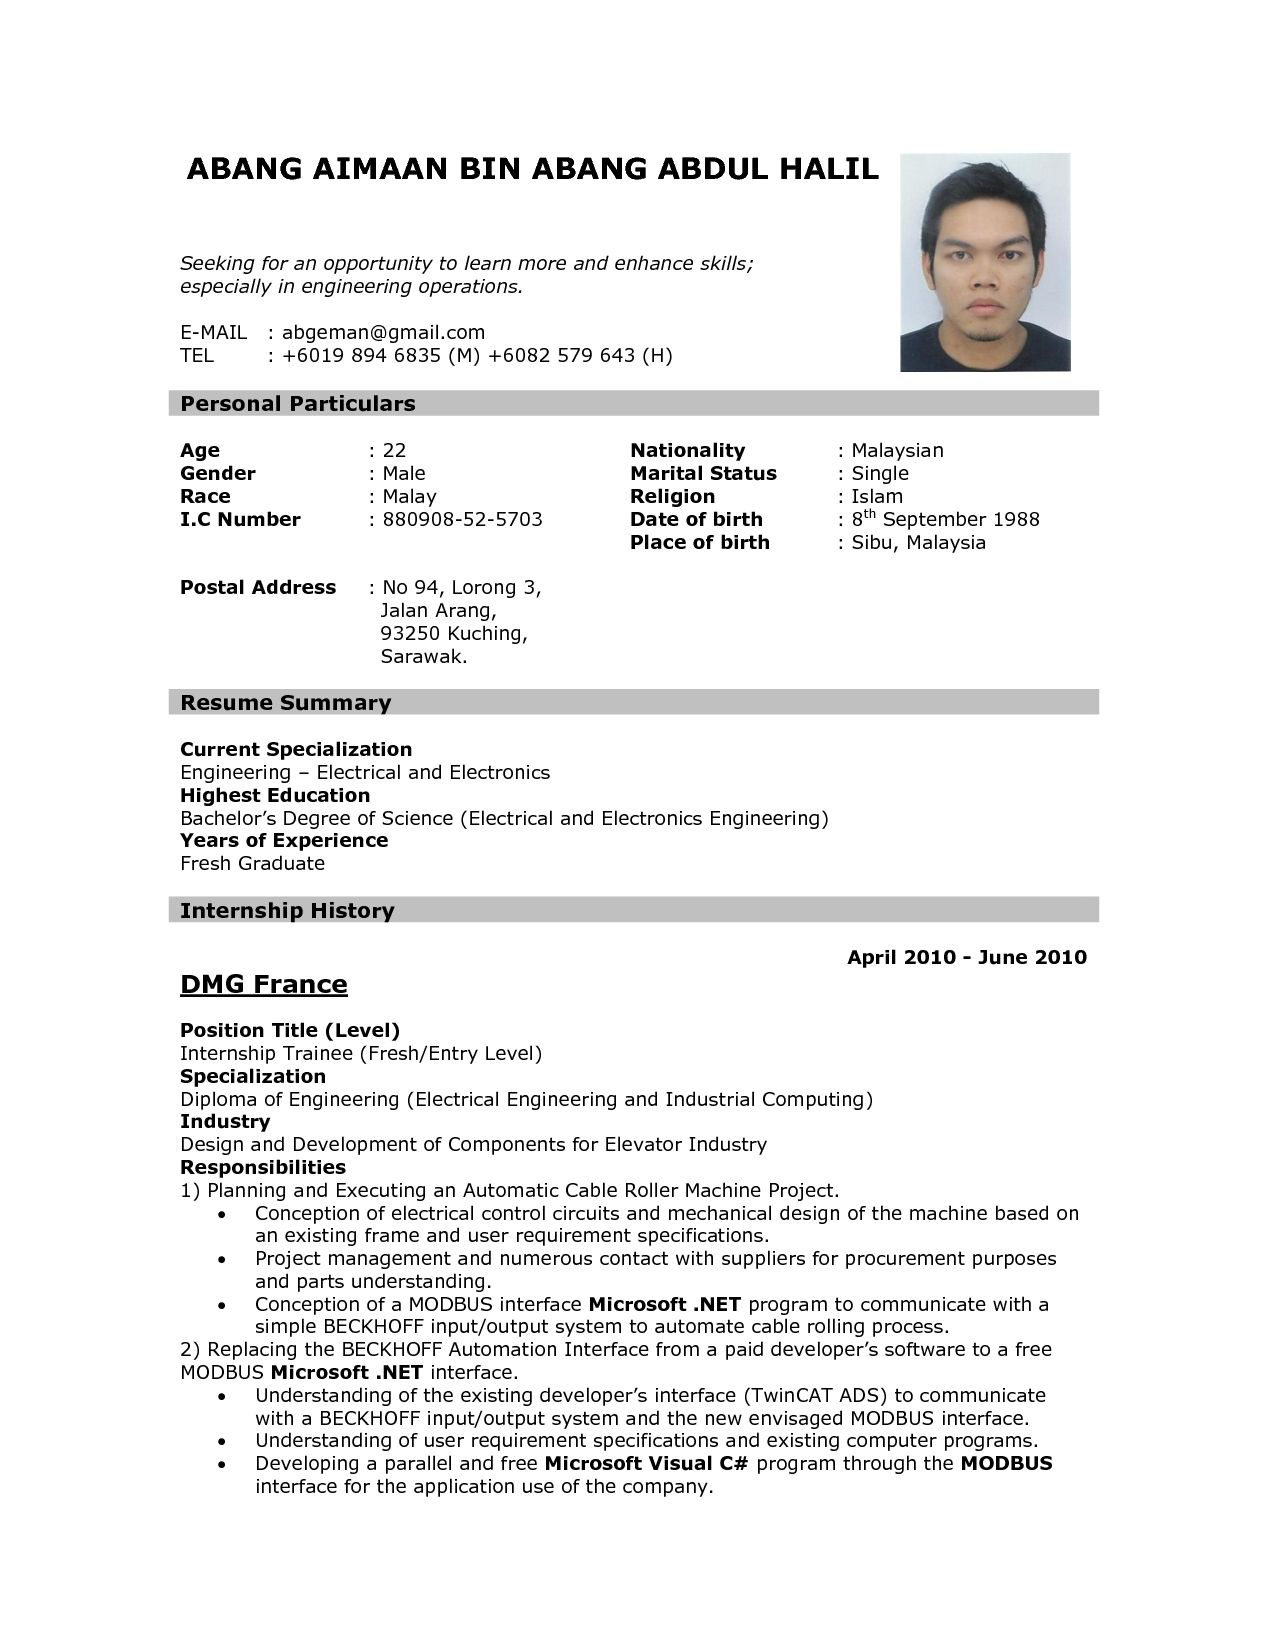 Resume Resume Format Job Application Free Download format of resume for job application to download data sample the applying